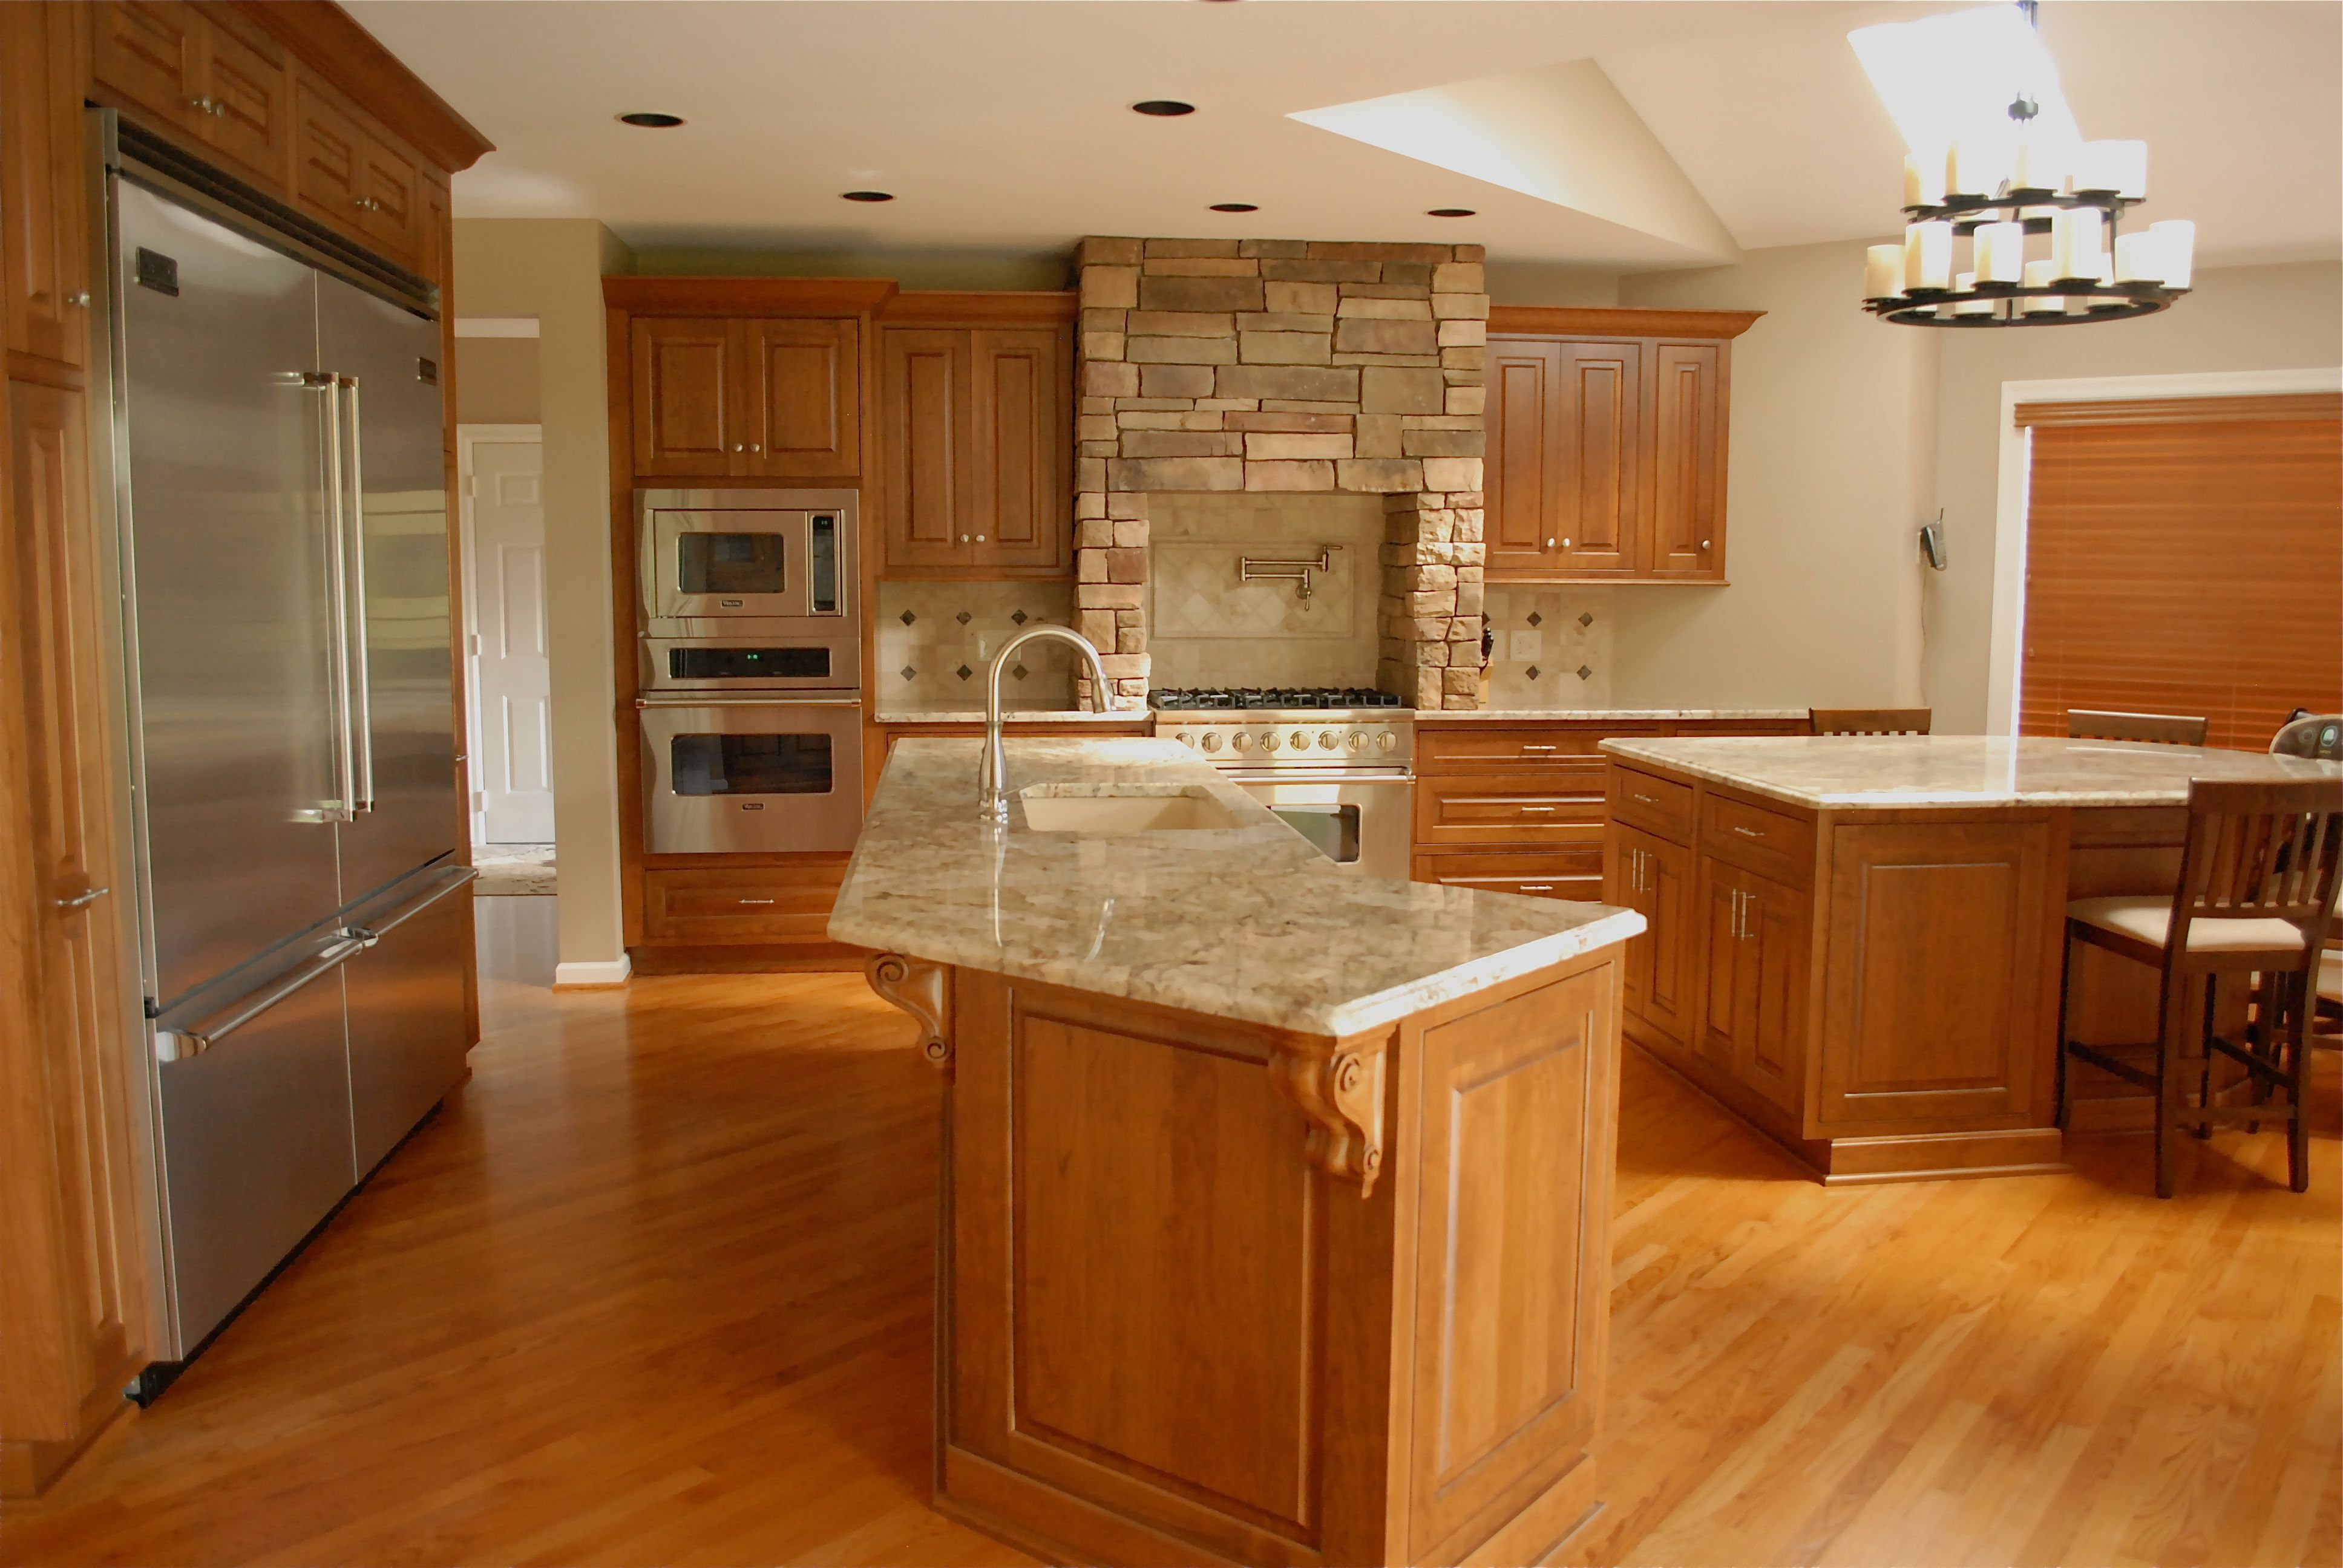 Inde Rochester Ny Kitchen Bath Remodeling Kitchen And Bath